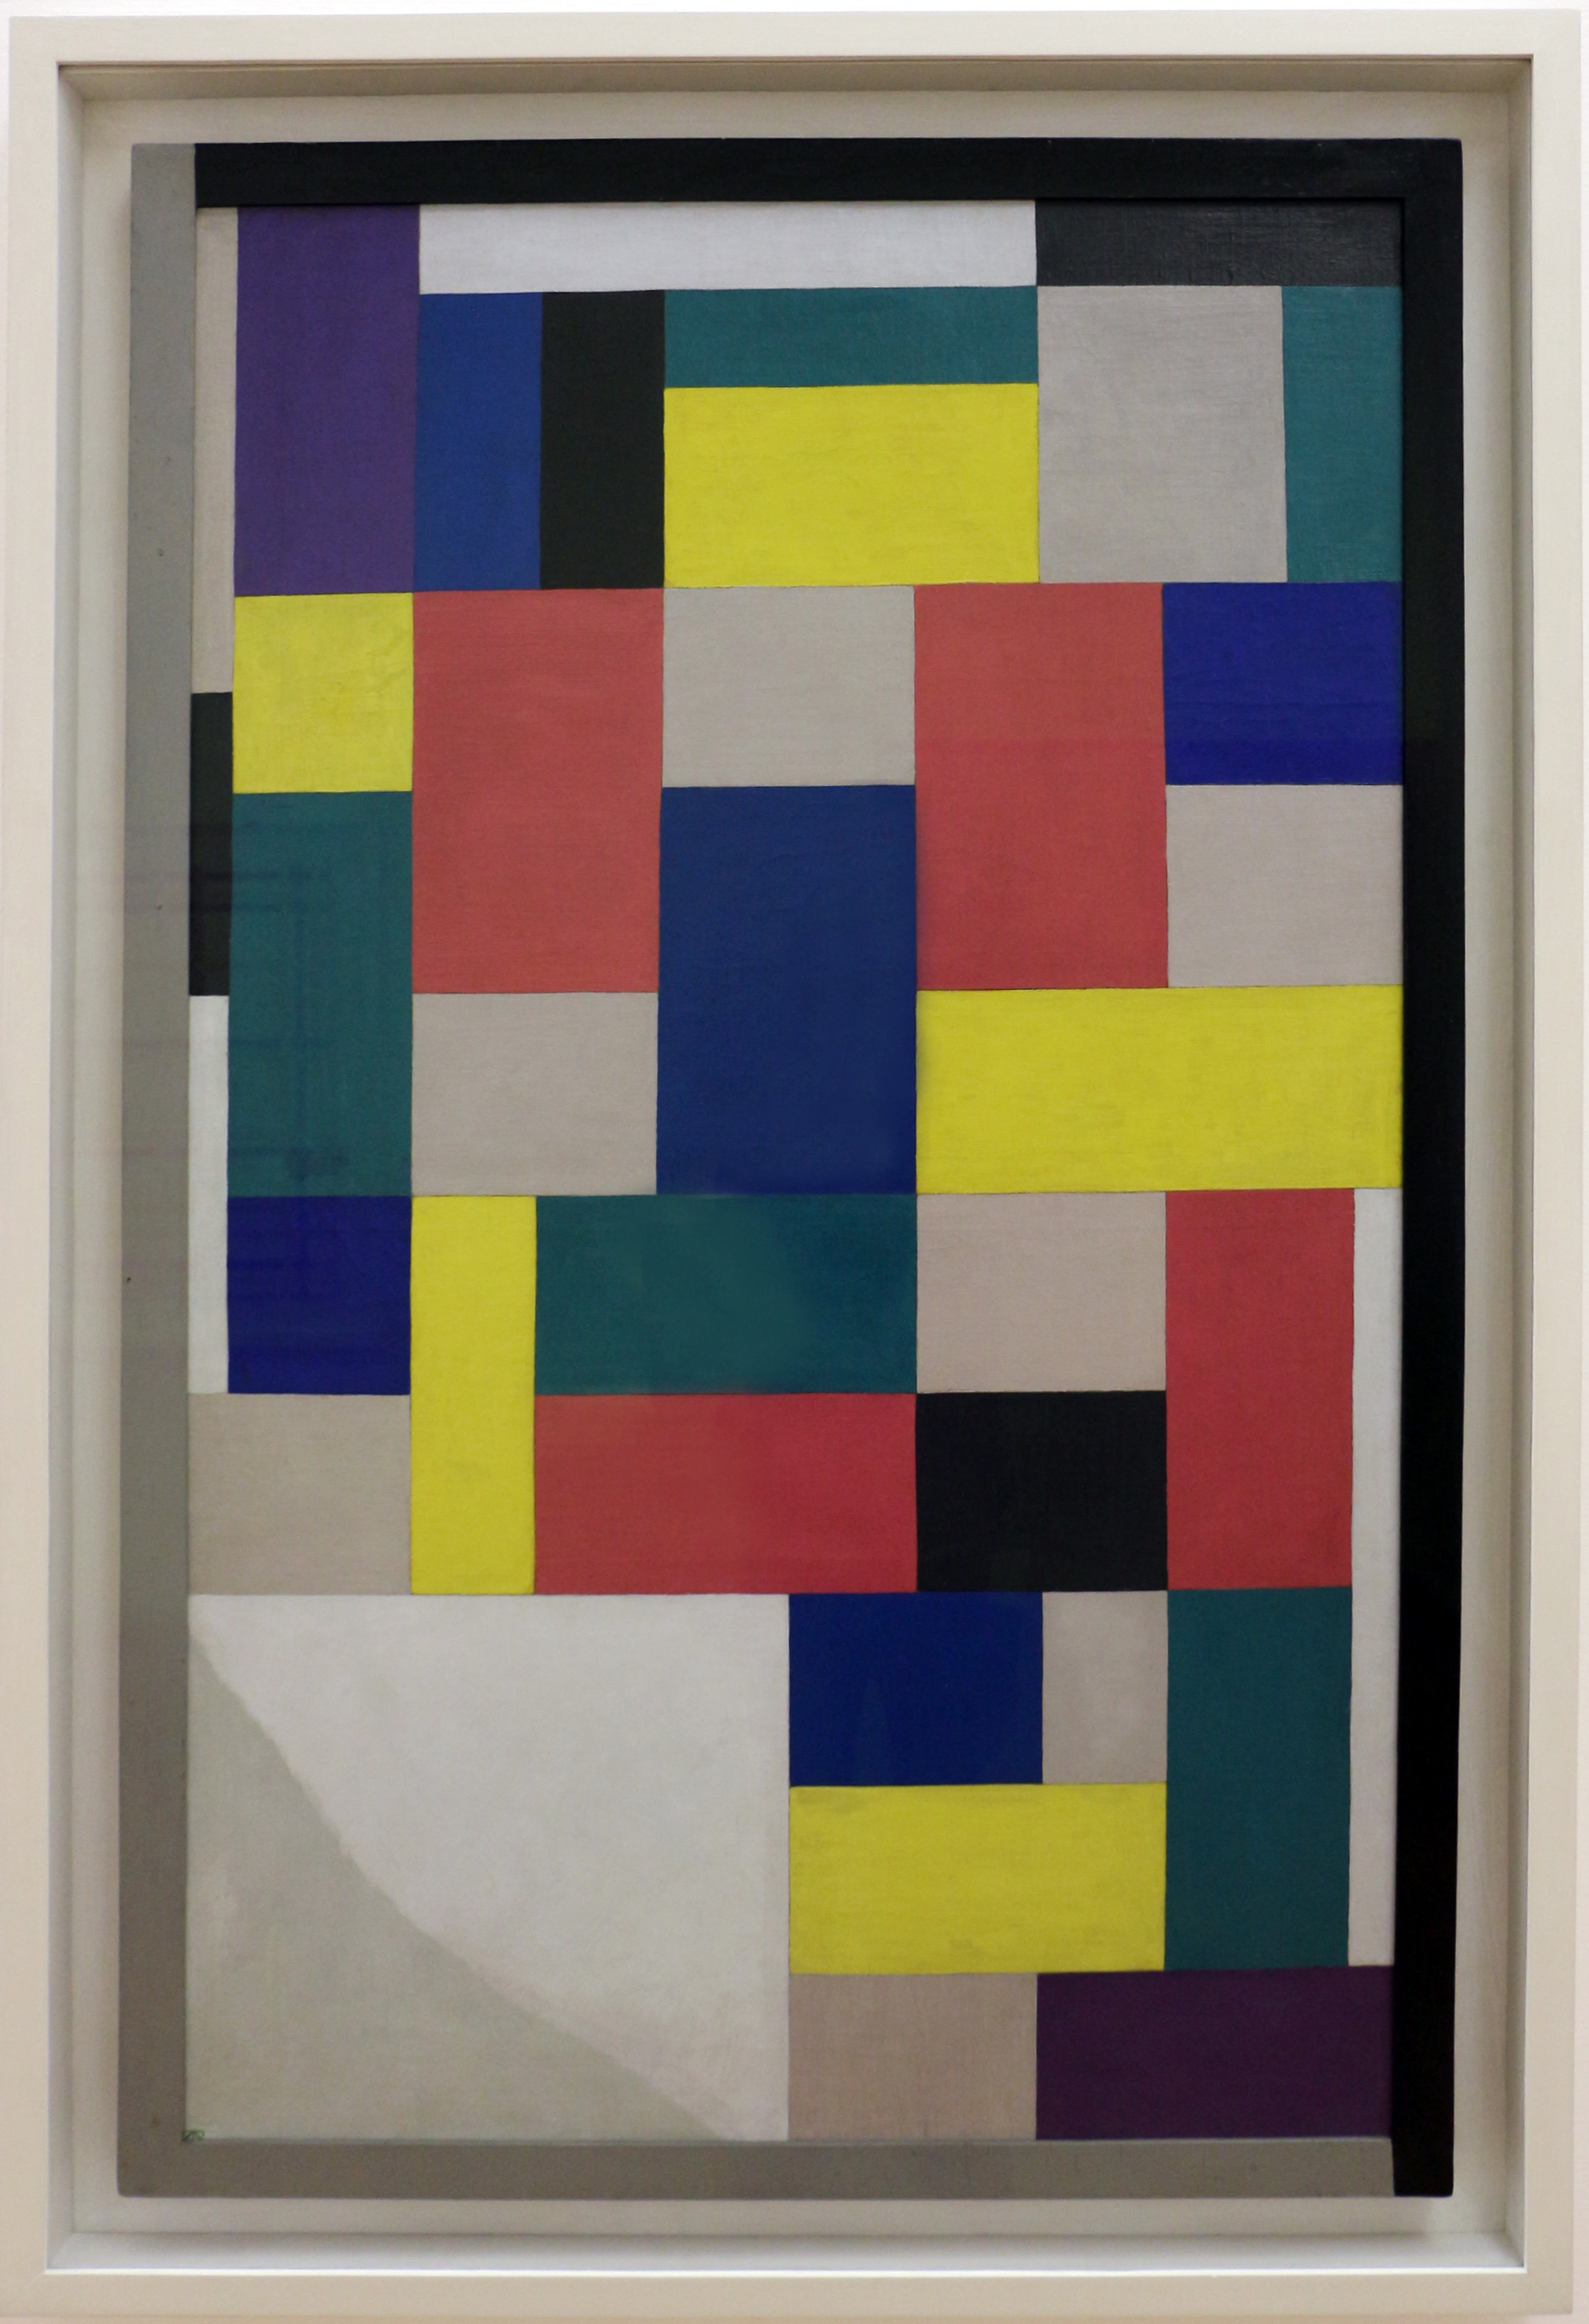 Pittura Contro L' File Theo Van Doesburg Pittura Pura 1920 Jpg Wikimedia Commons